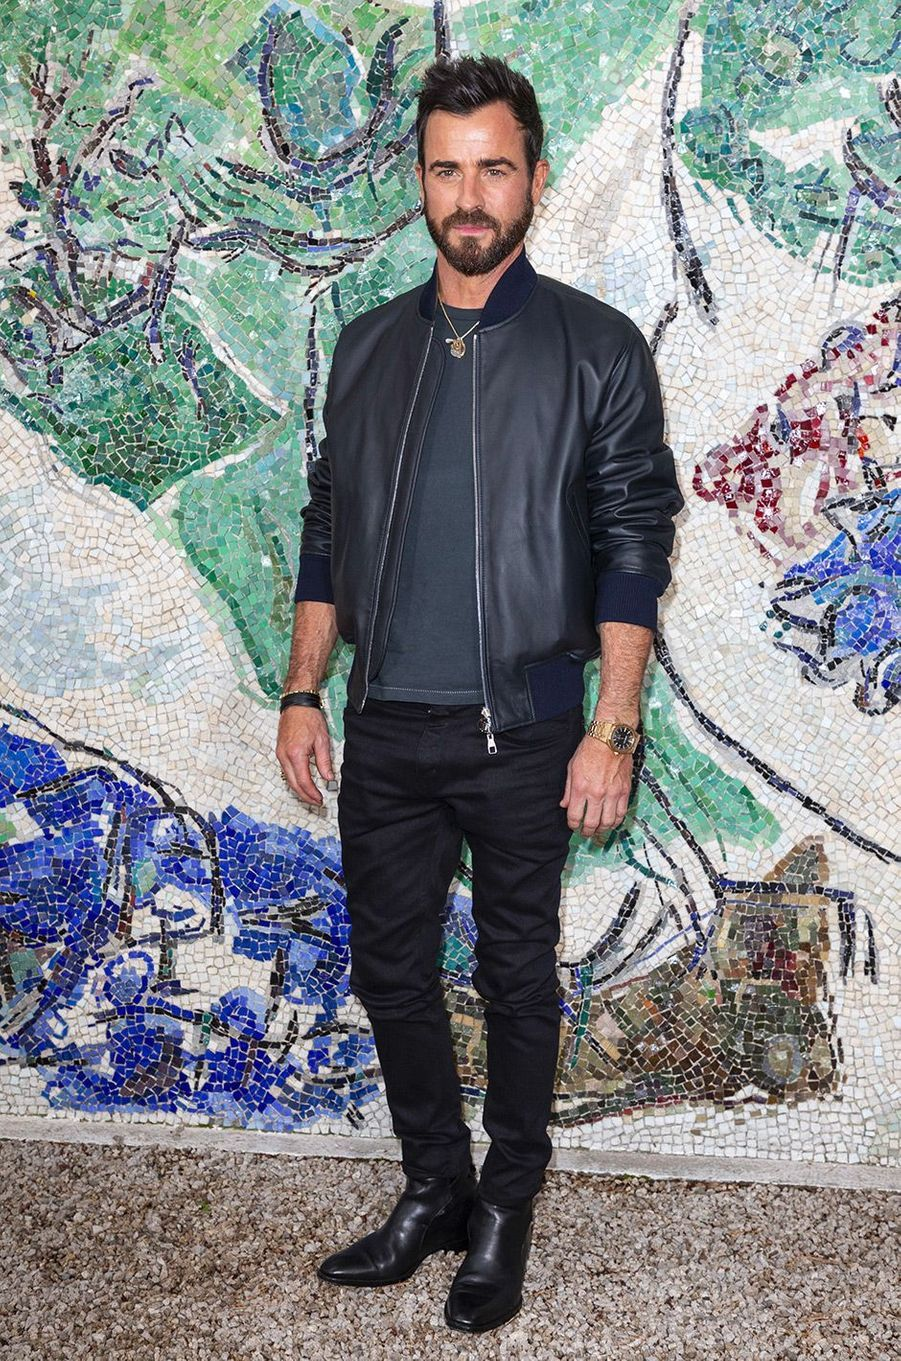 Justin Theroux au défilé Louis Vuitton à la fondation Maeght lundi 28 mai